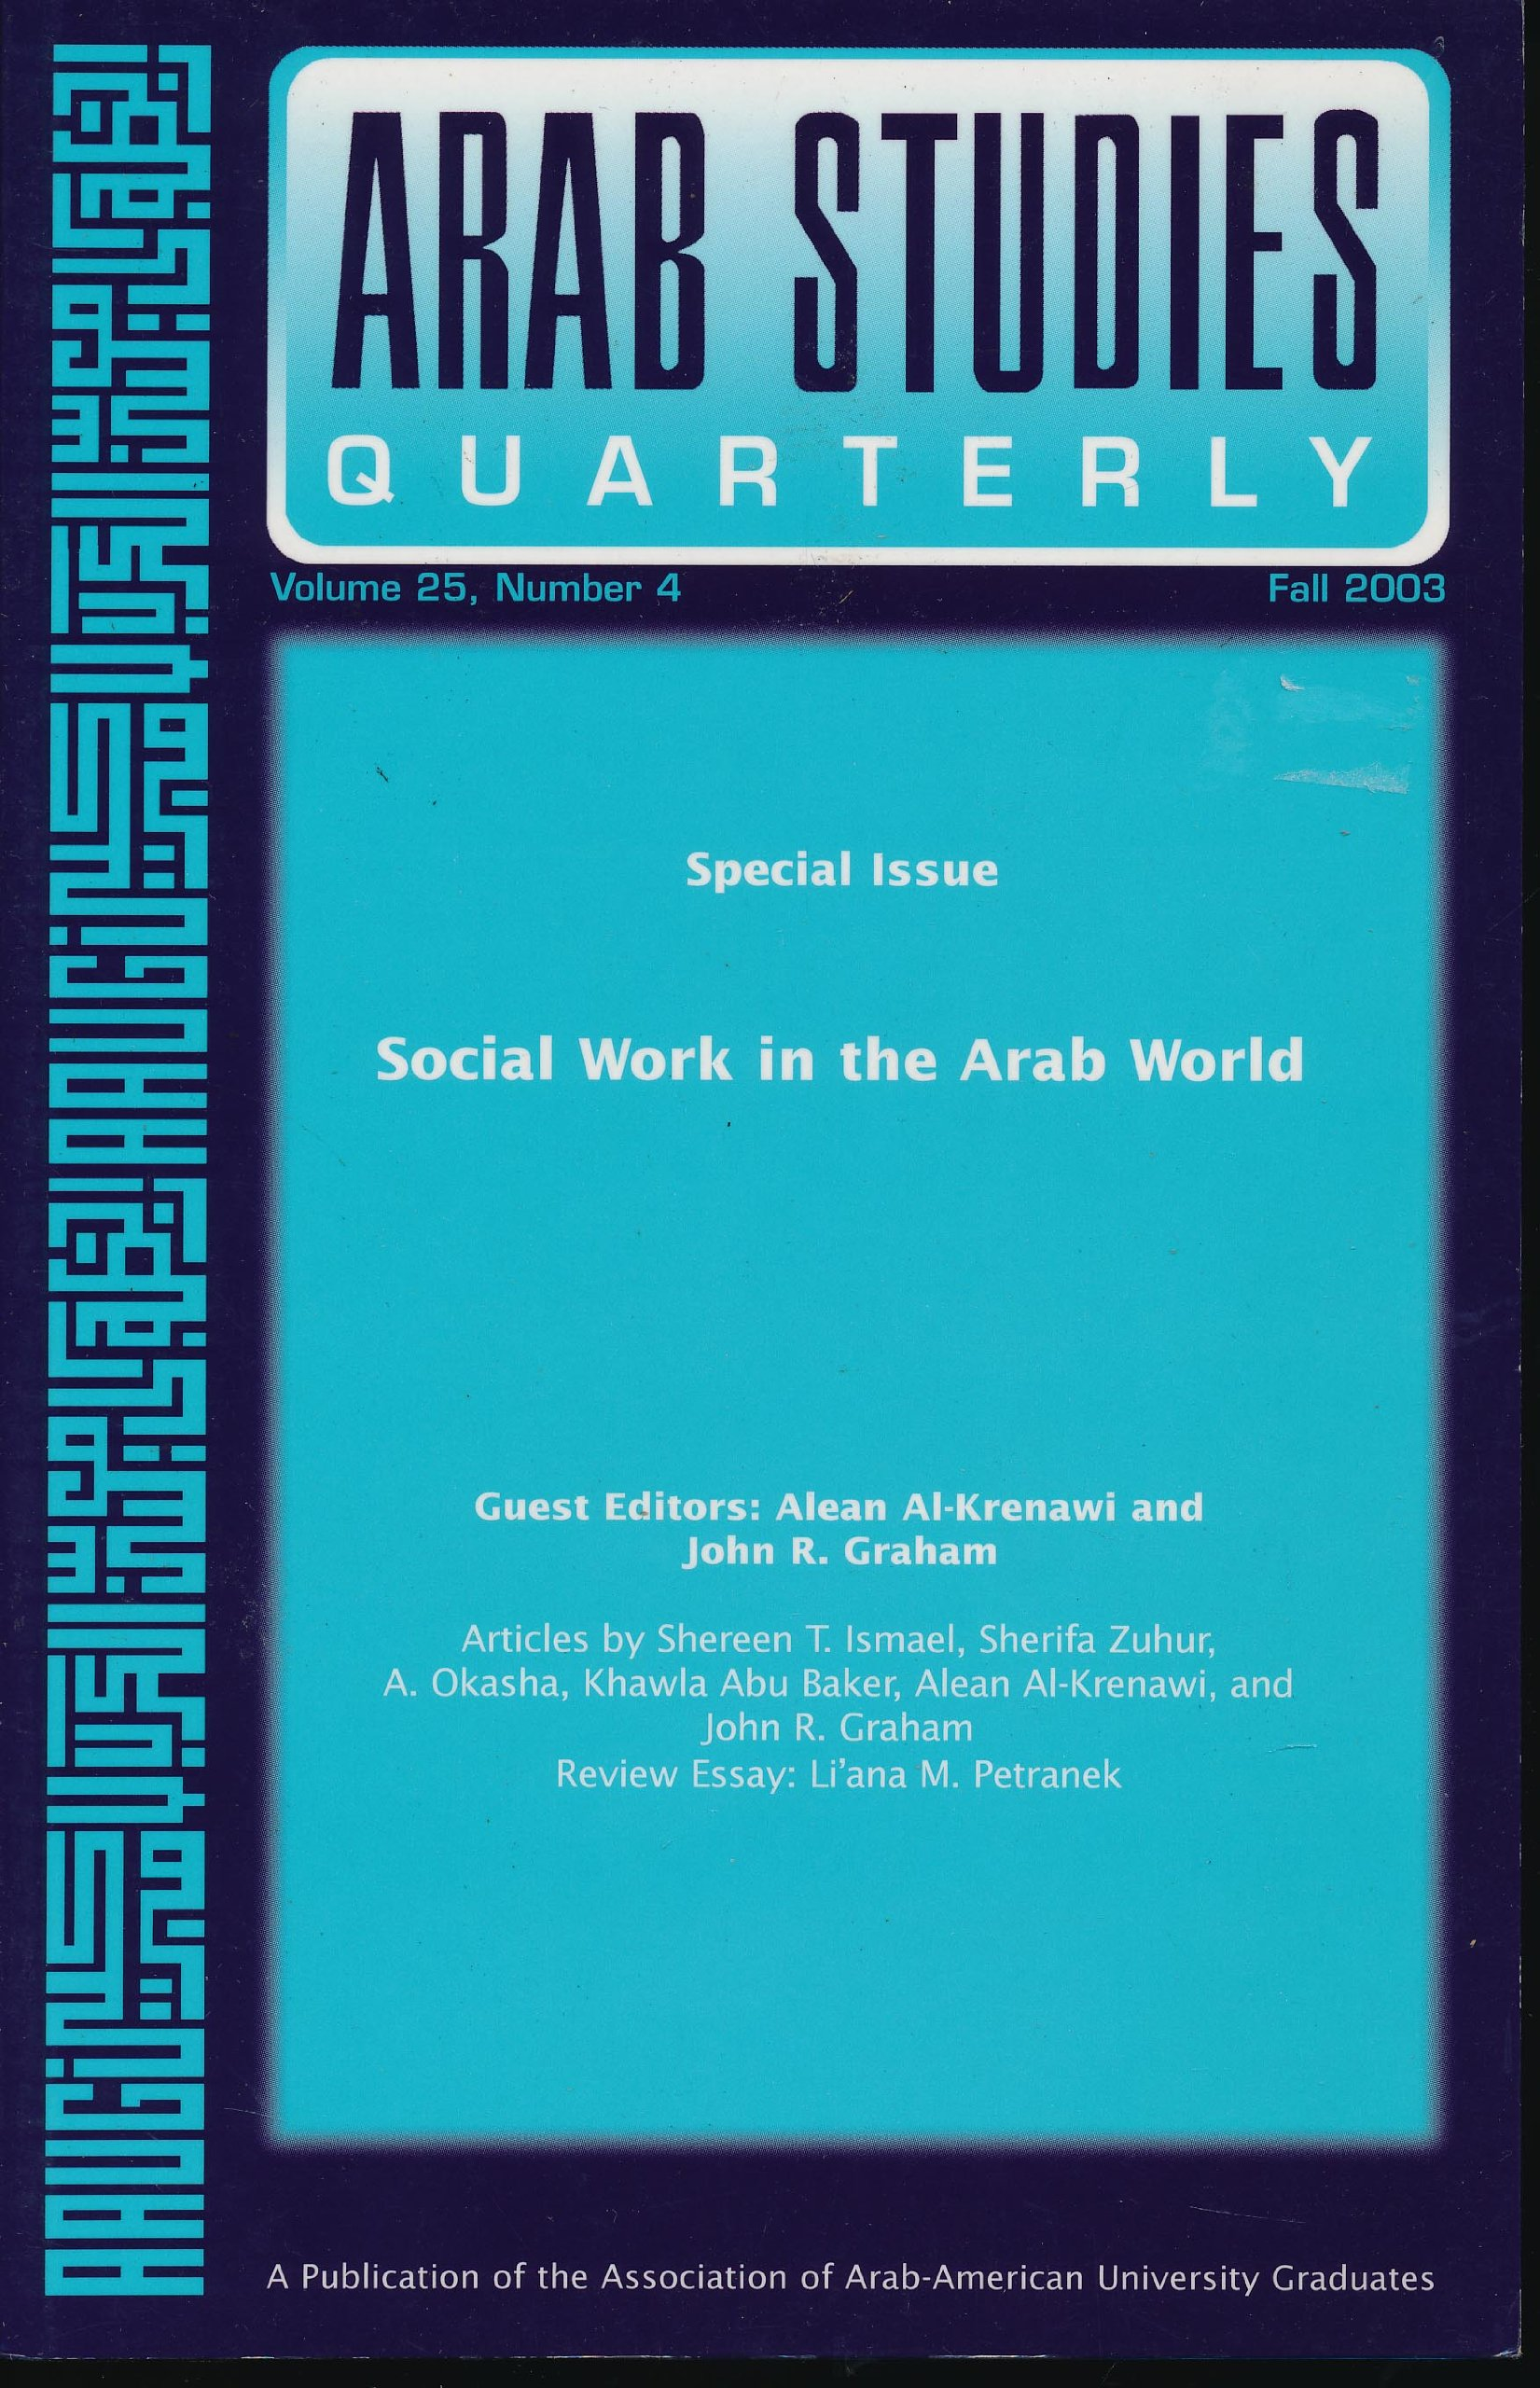 Arab Studies Quarterly